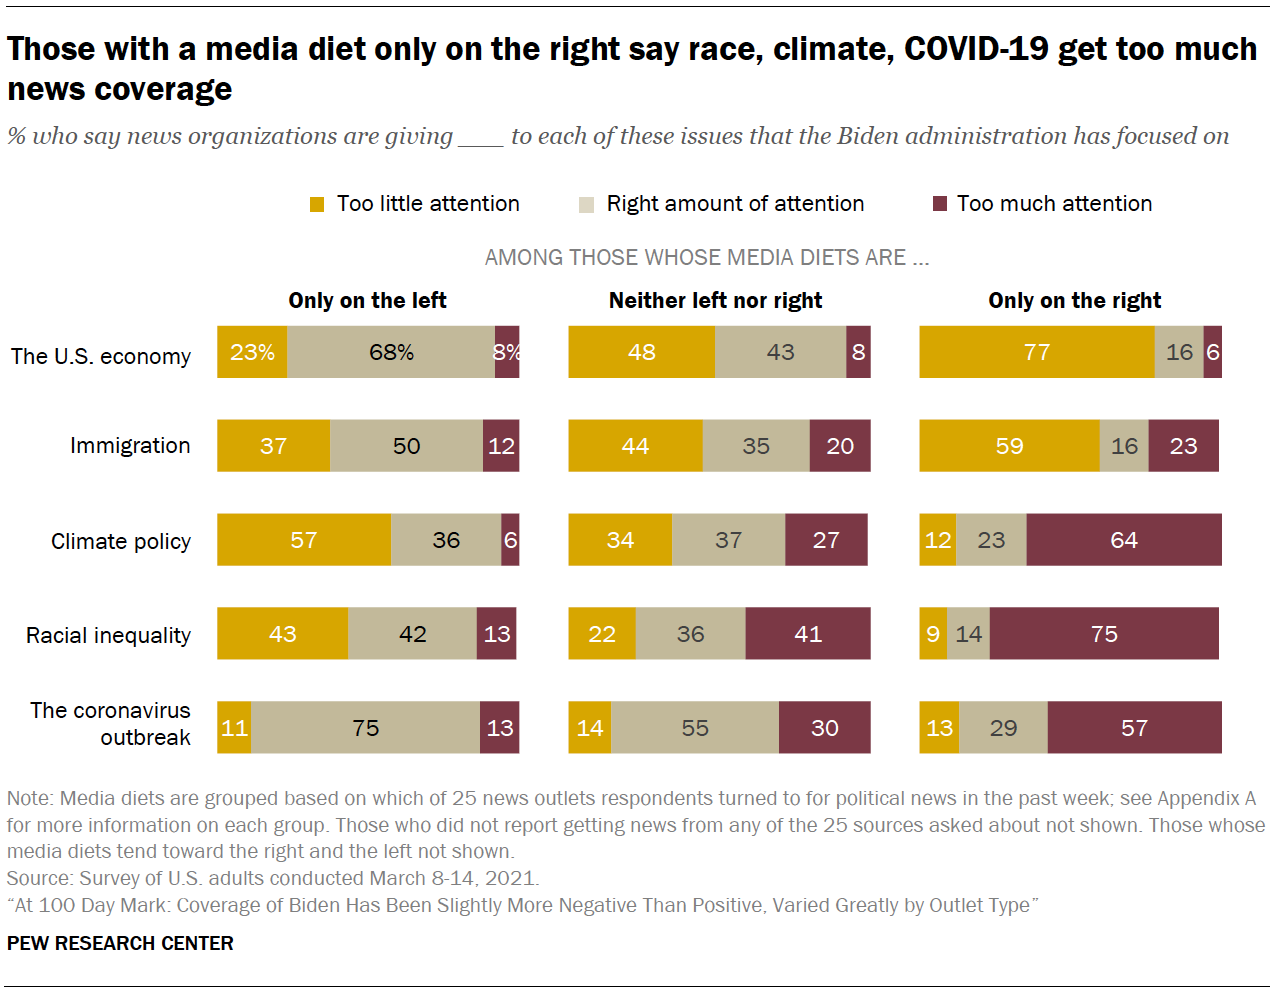 Those with a media diet only on the right say race, climate, COVID-19 get too much news coverage